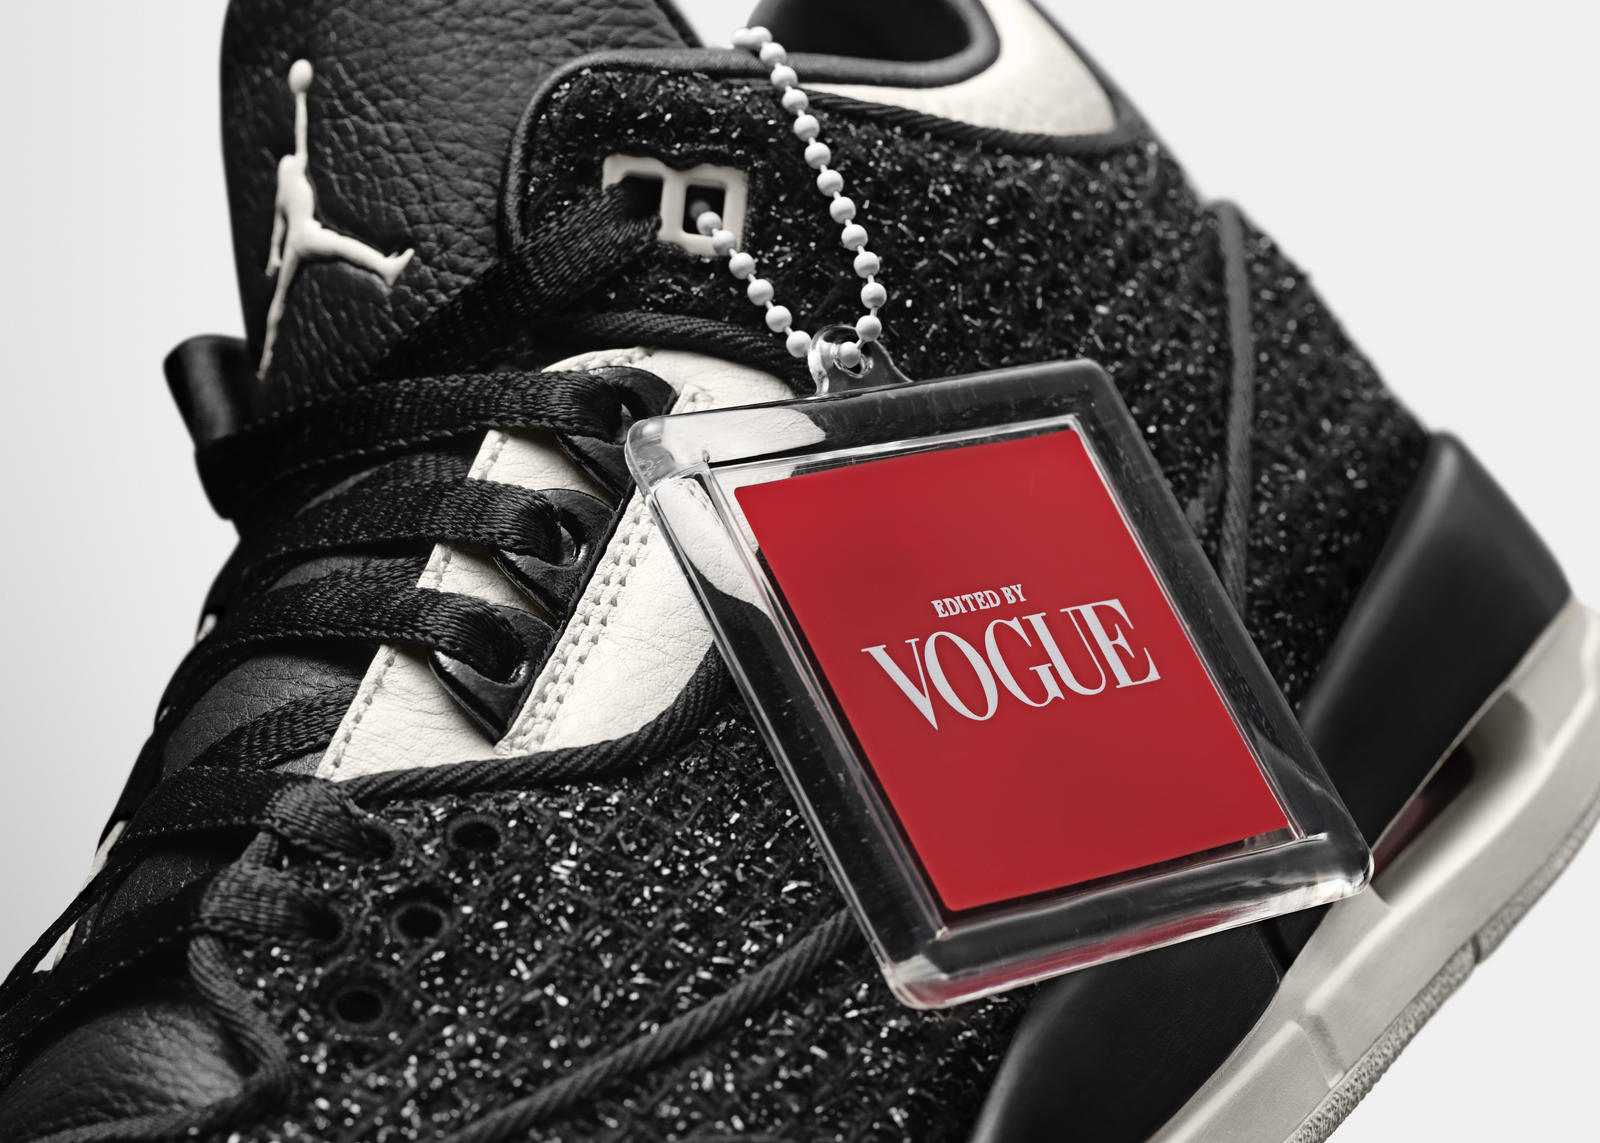 Jordan Brand and Vogue Partner to Create First-Ever Jordan Women's Collaboration 15